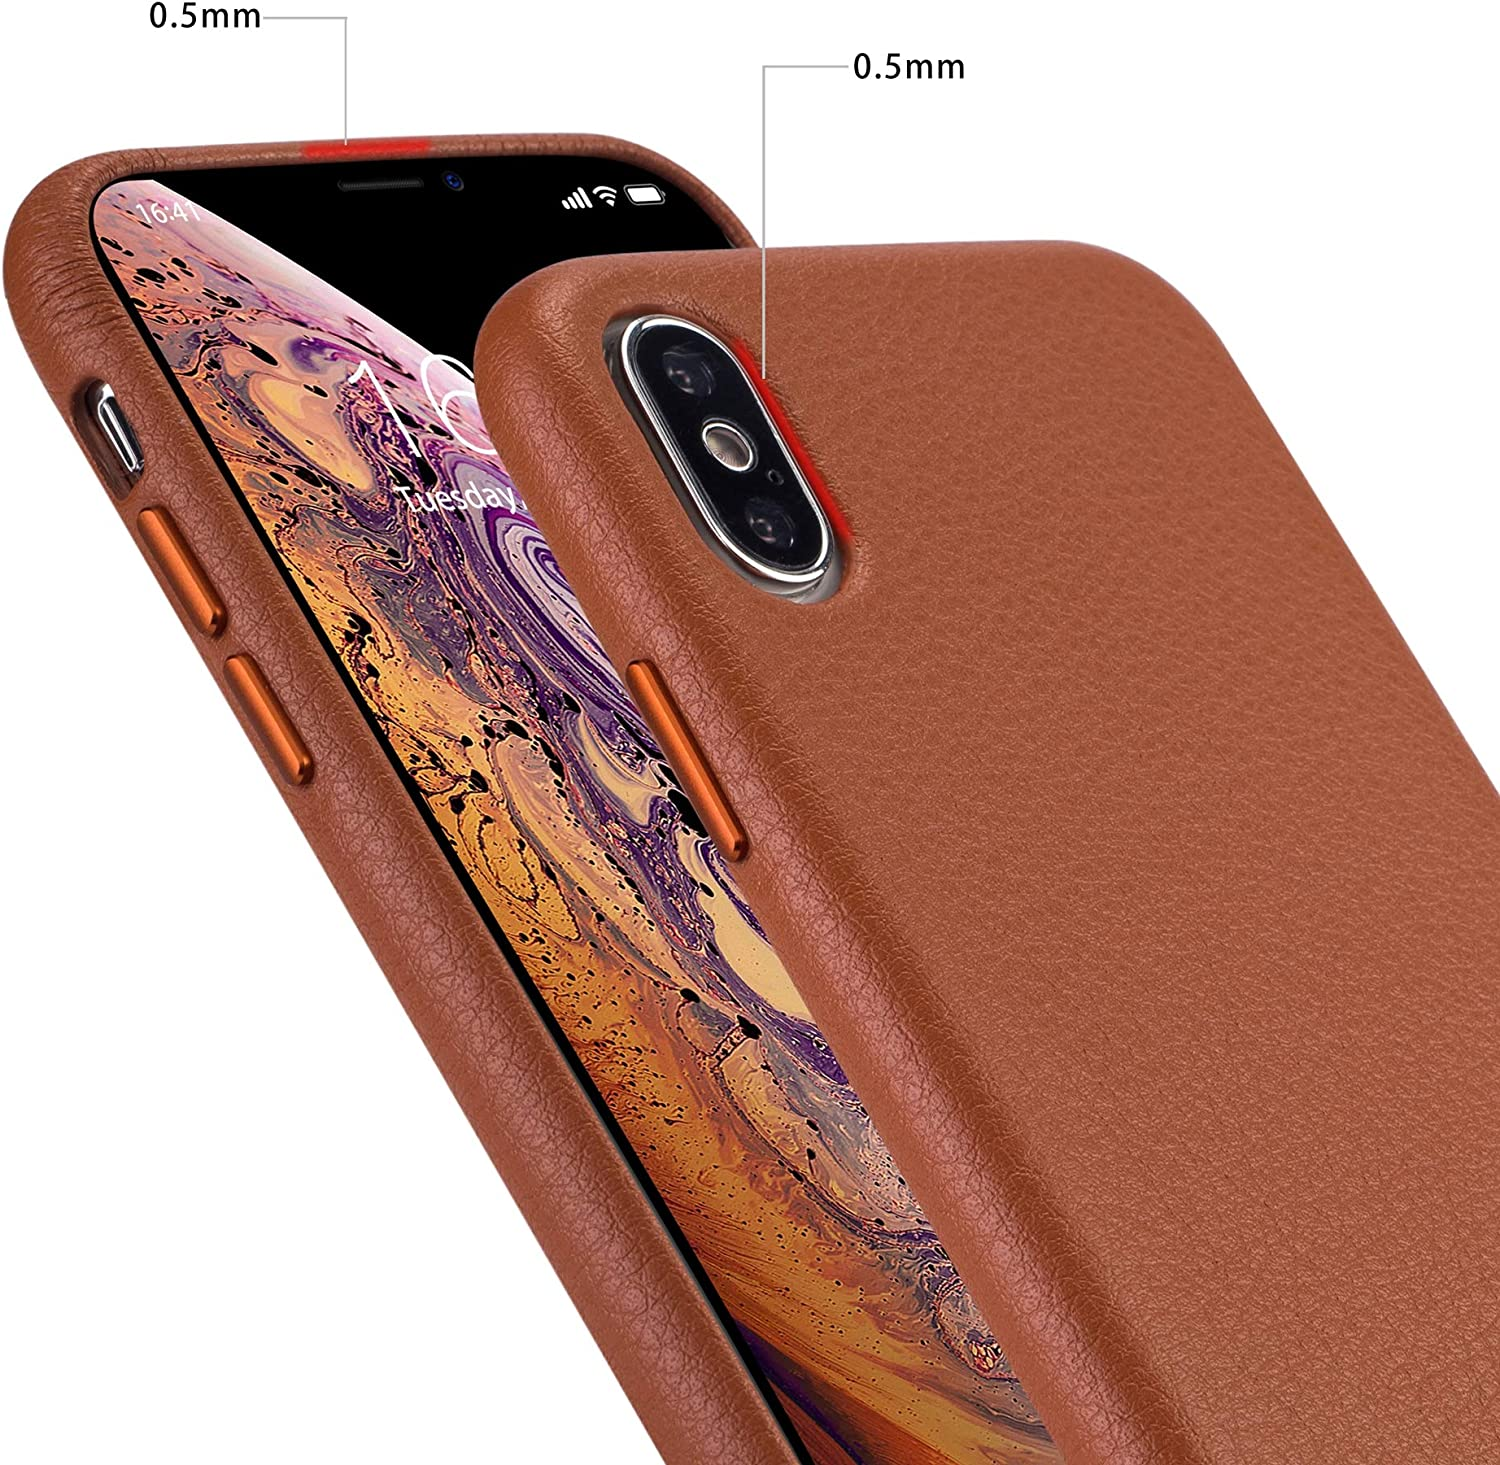 rejazz iPhone x Case iPhone Xs Case Anti-Scratch iPhone x Cover iPhone Xs Cover Genuine Leather Apple iPhone Cases for iPhone x/xs (5.8 Inch)(Brown)